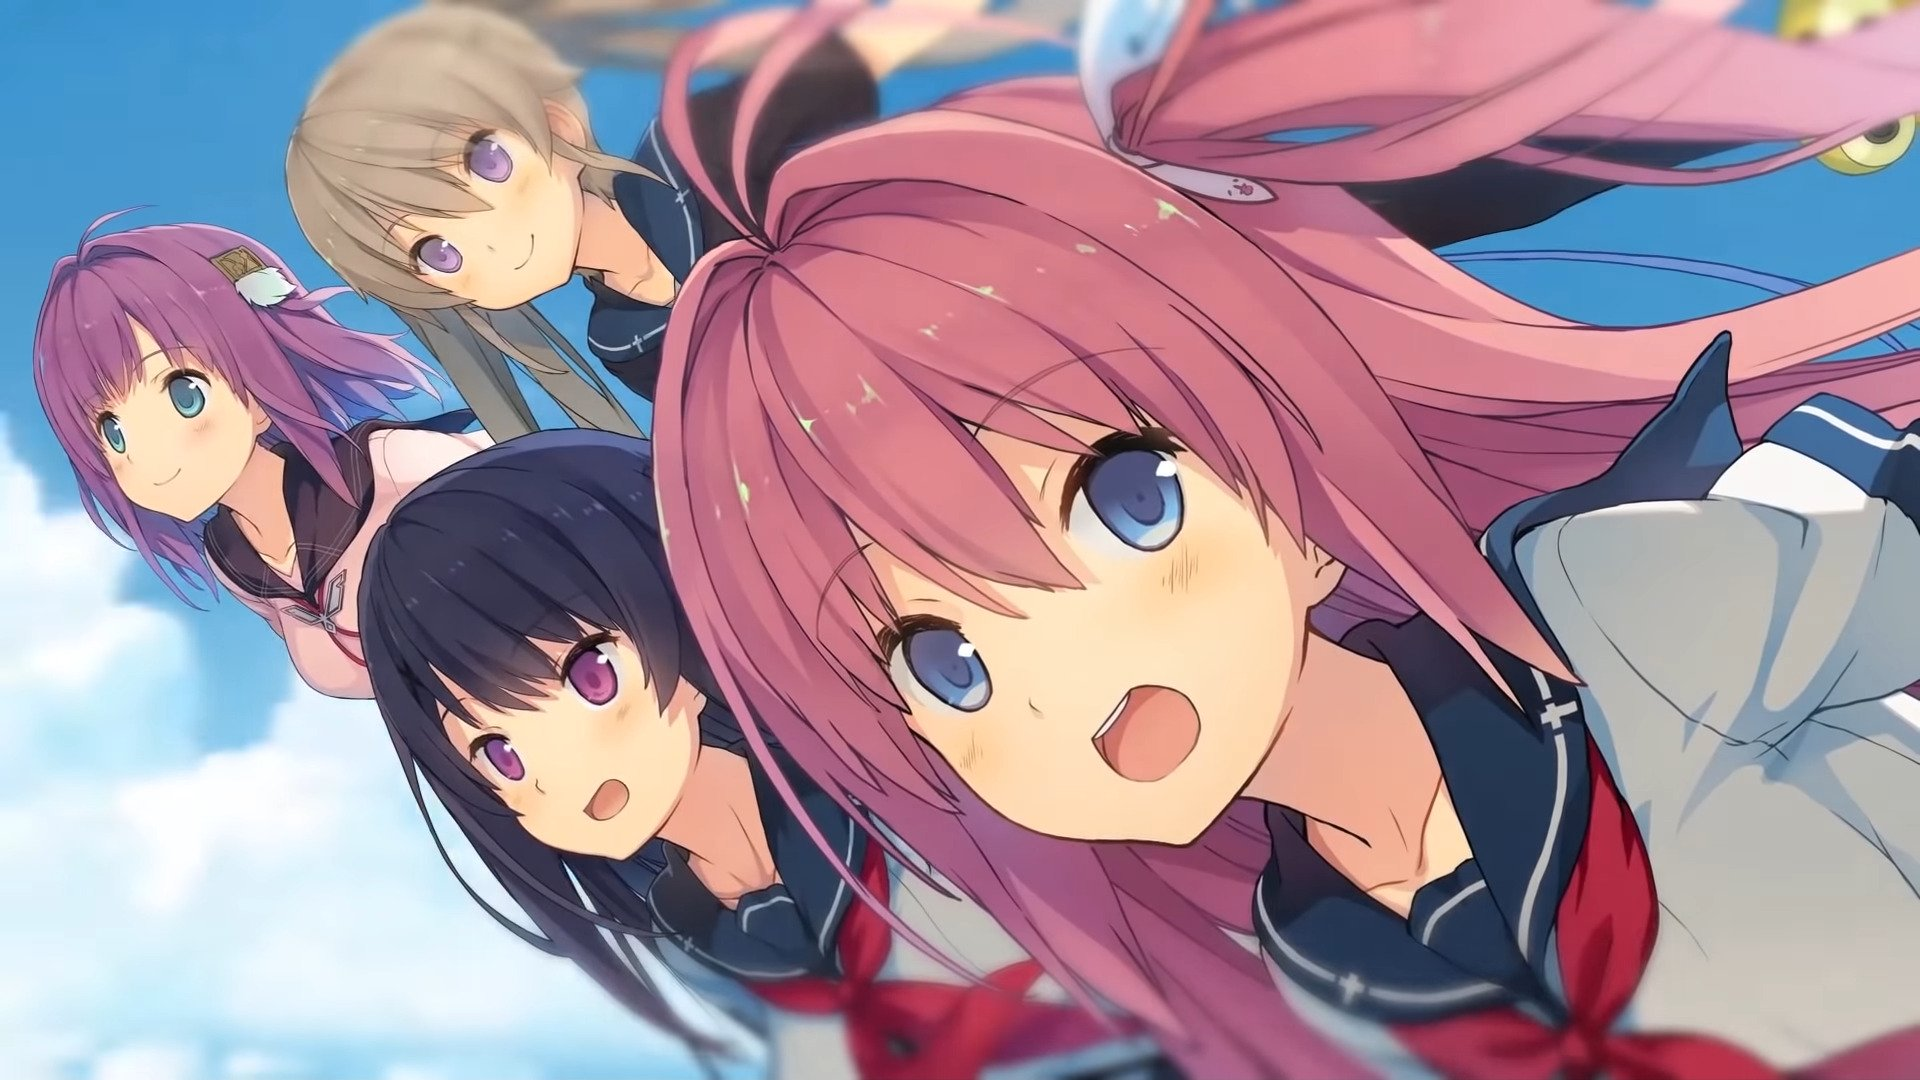 Aokana – Four Rhythms Across The Blue, An Adult Visual Novel Game, Is Released Worldwide This Week On PS4 And Switch